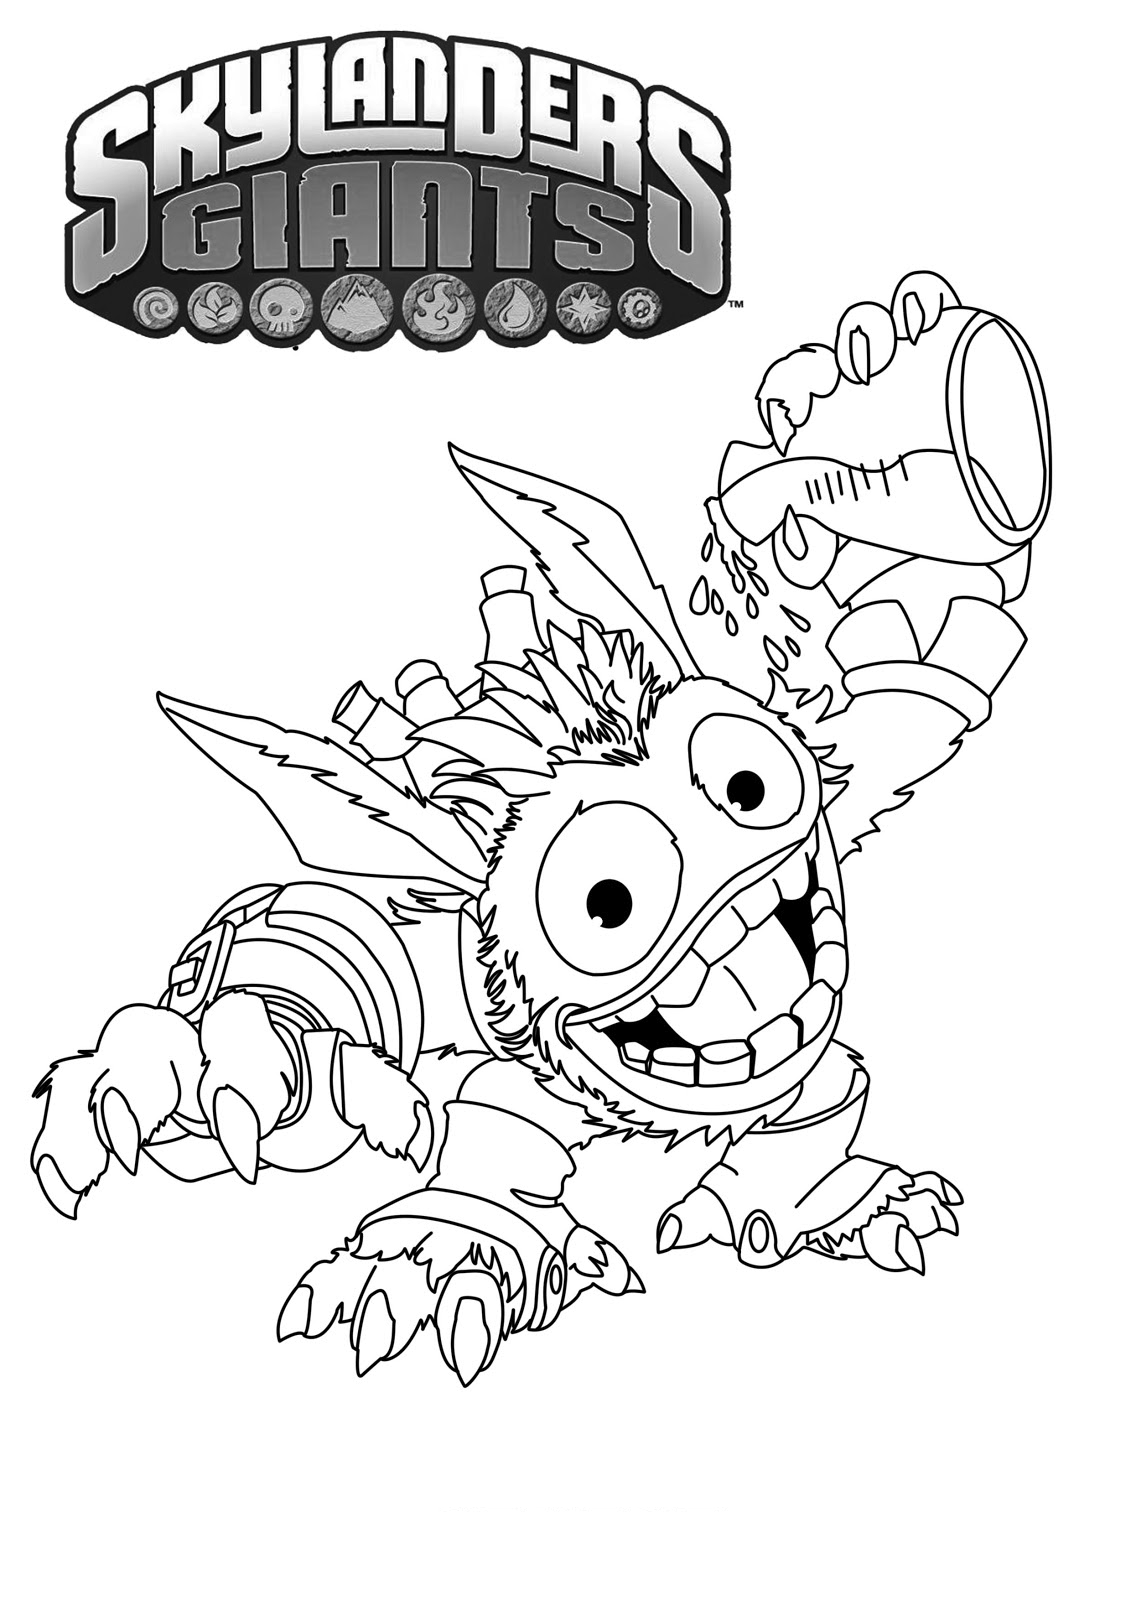 Skylander Coloring : skylander, coloring, Skylanders, Coloring, Pages